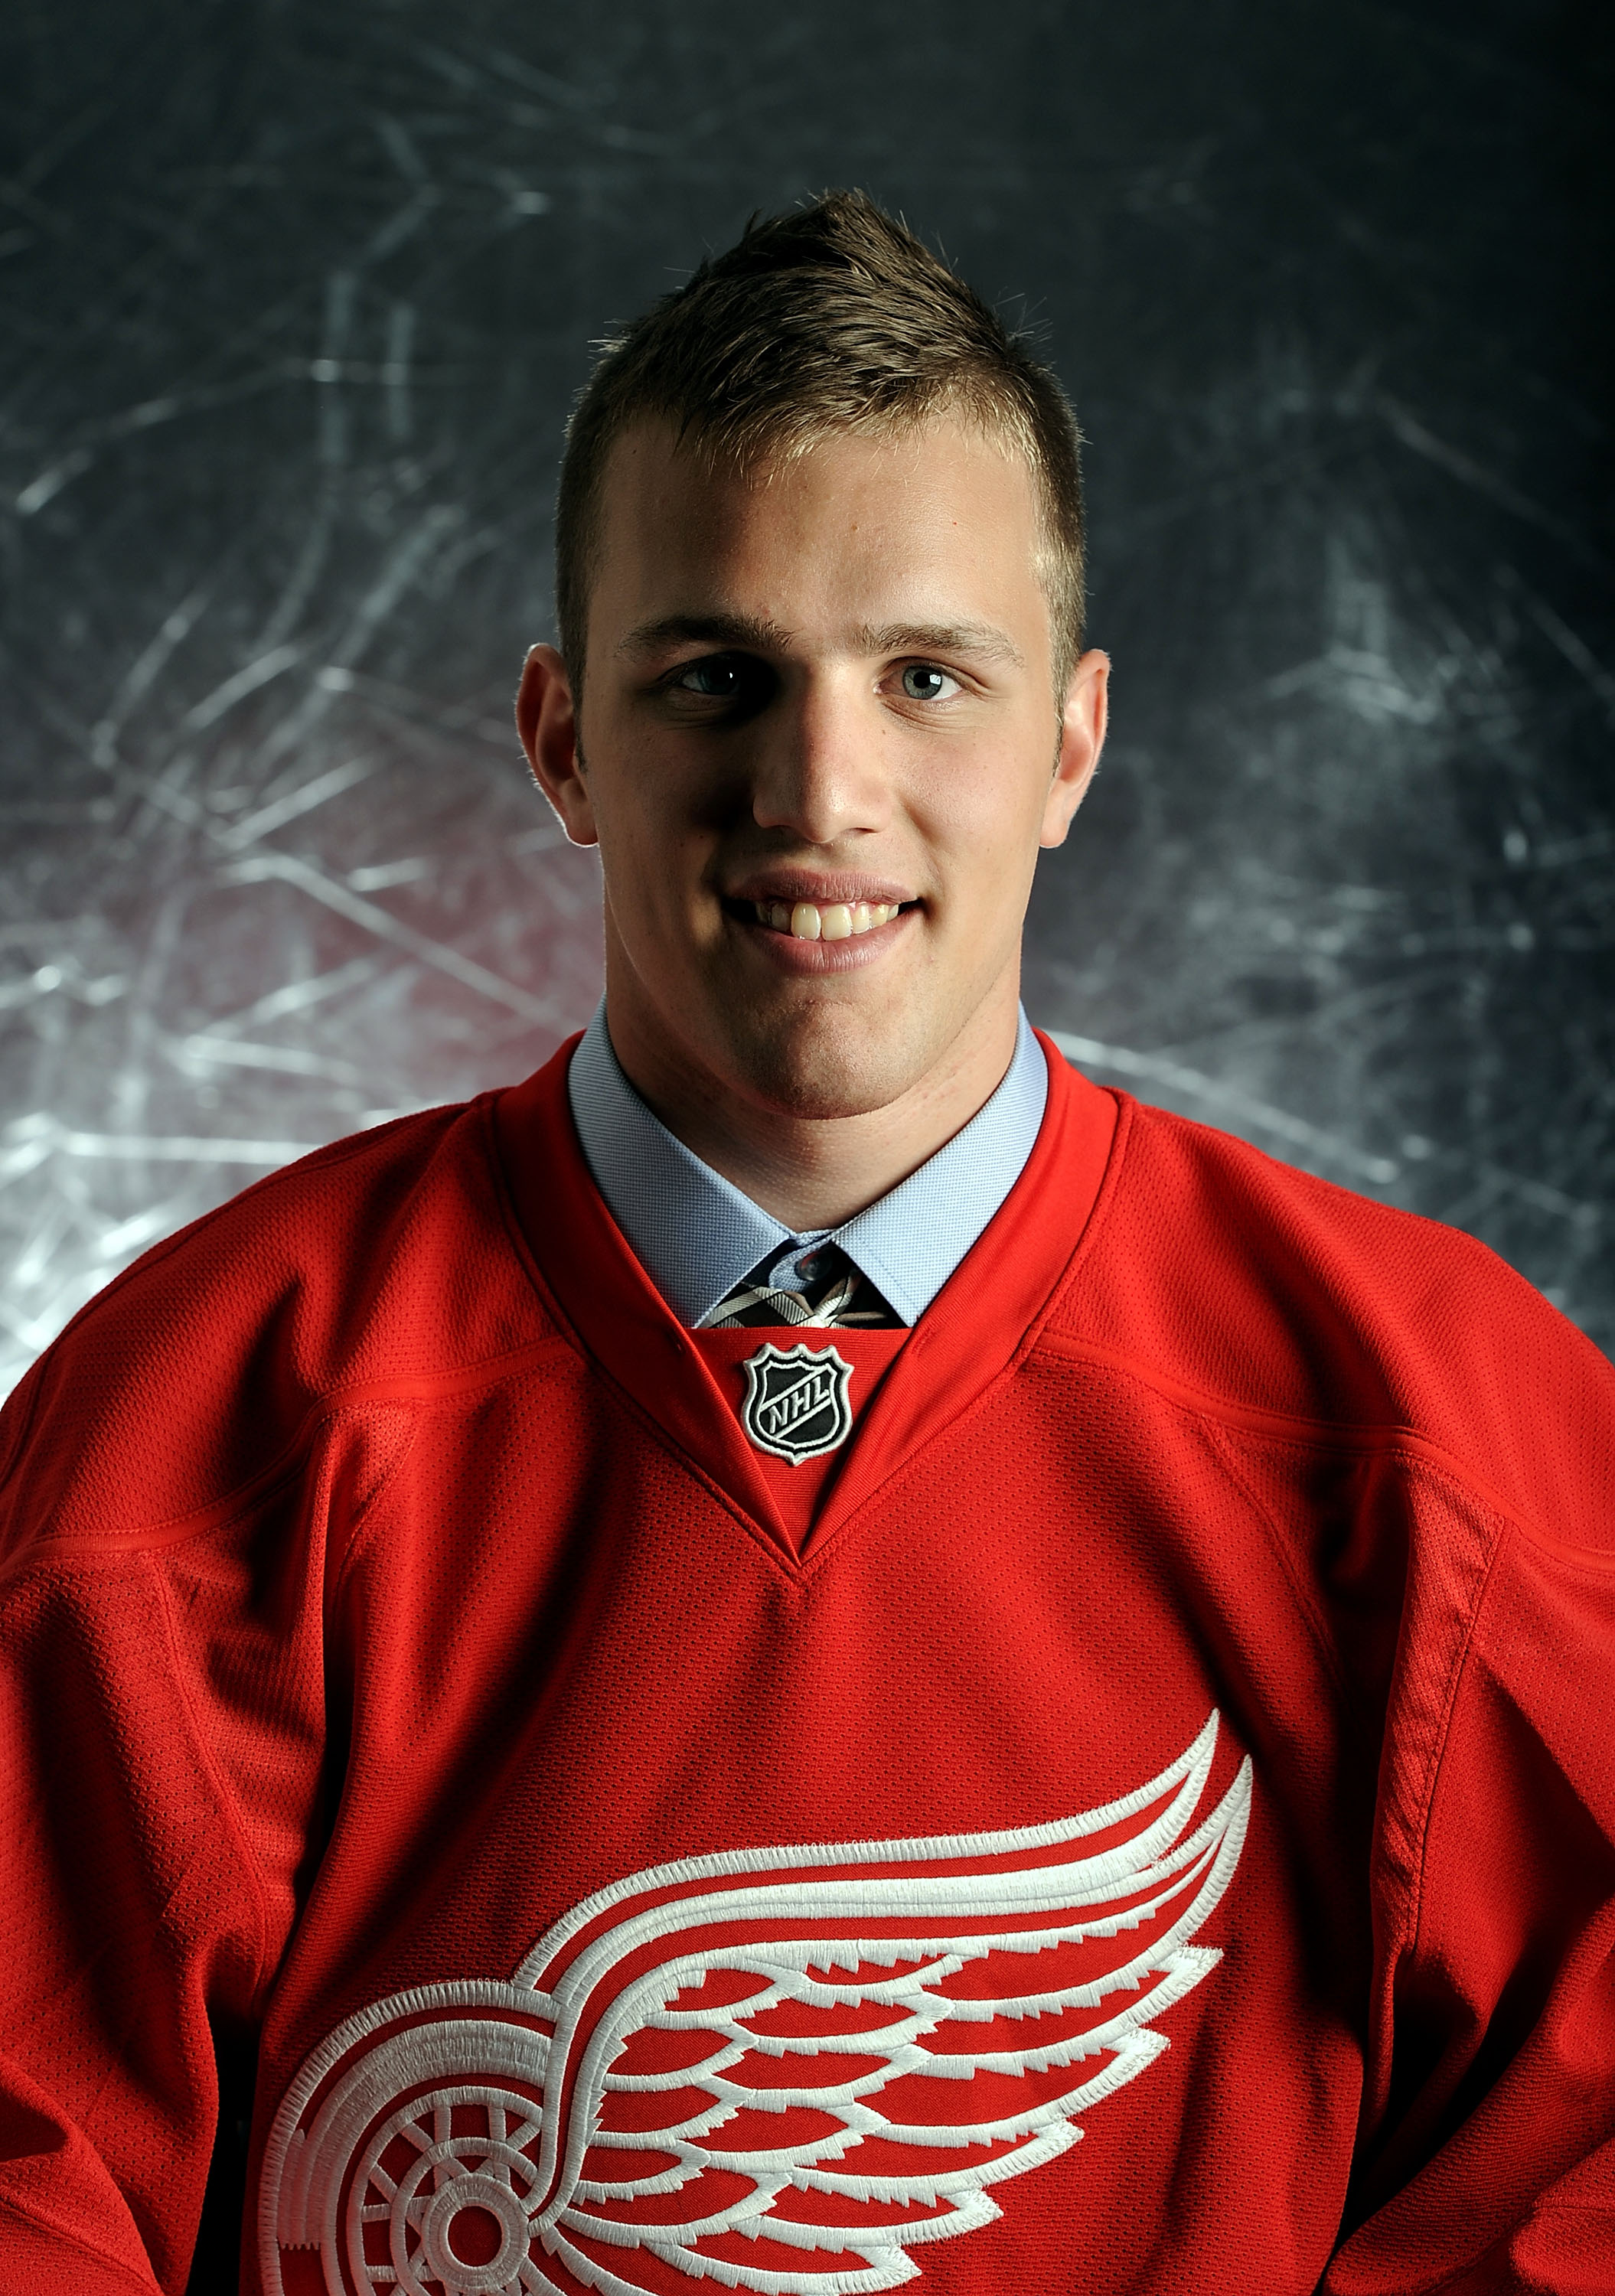 LOS ANGELES, CA - JUNE 25:  Riley Sheahan, drafted 21th overall by the Detroit Red Wings, poses for a portrait during the 2010 NHL Entry Draft at Staples Center on June 25, 2010 in Los Angeles, California.  (Photo by Harry How/Getty Images)